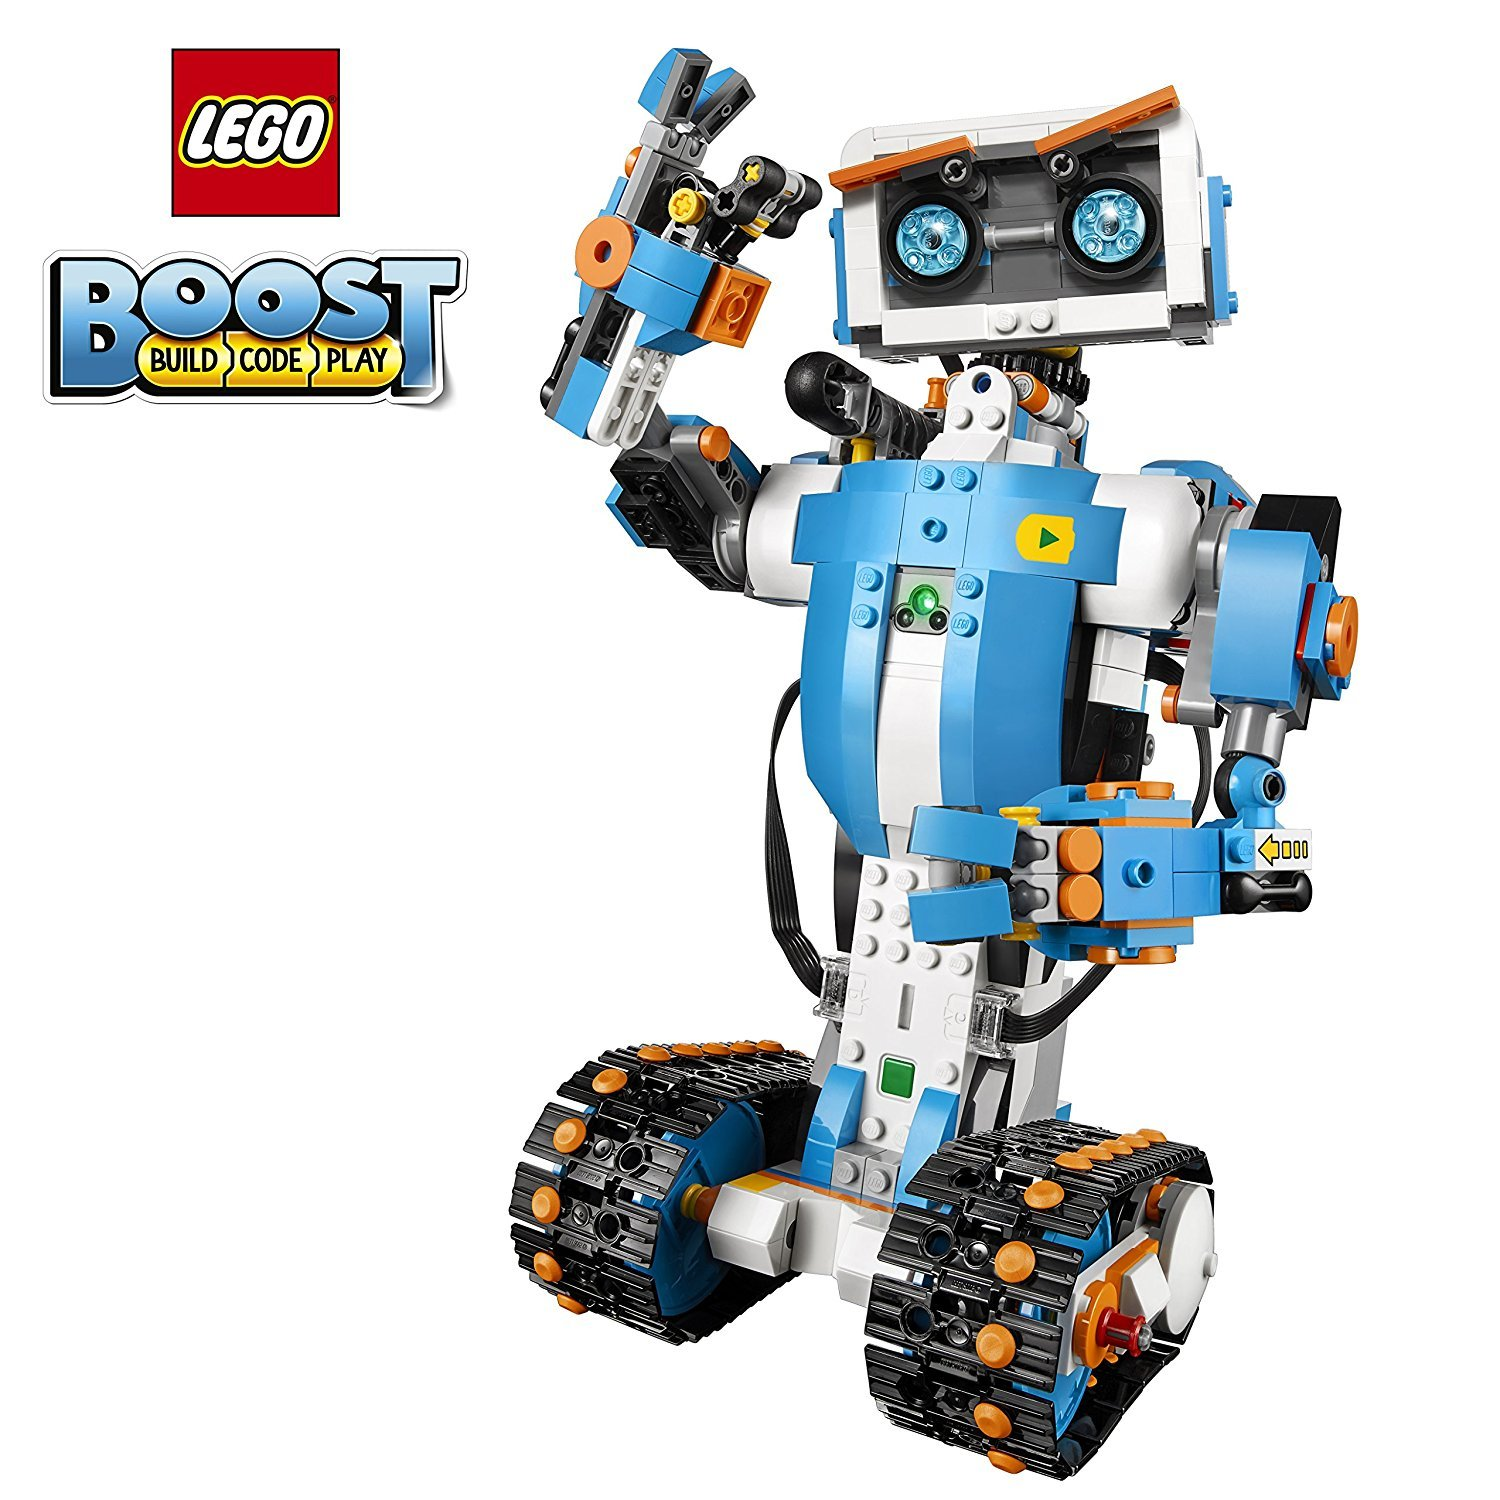 LEGO Boost Creative Toolbox 17101 Fun Robot Building Set and Educational Coding Kit for Kids, Award-Winning STEM Learning Toy (847 Pieces) by LEGO Boost